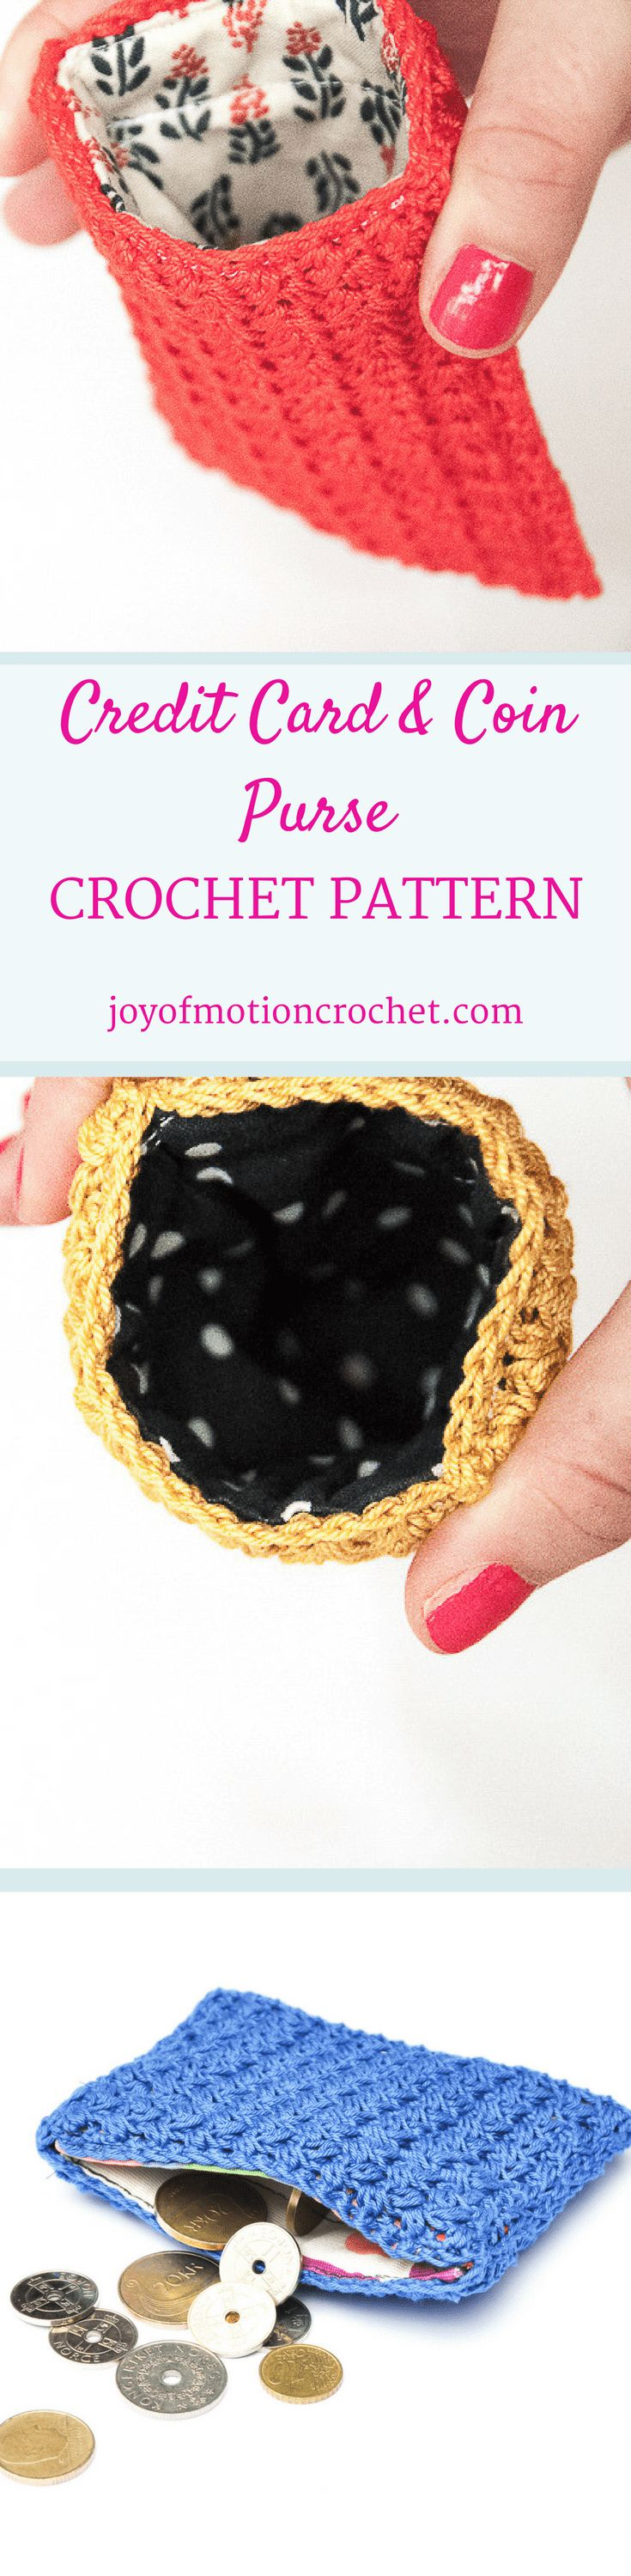 The credit card purse - crochet pattern. Crochet pattern for a lovely purse. Skill level intermediate. You will need yarn, thread, fabric, a crochet hook. Perfect unique Christmas gift for a friend | Joy of Motion Design | purse crochet pattern | credit card pouch crochet pattern | credit card purse lined with fabric | metal flex frame purse pattern. Click to purchase or repin to save it forever. via @http://pinterest.com/joyofmotion/